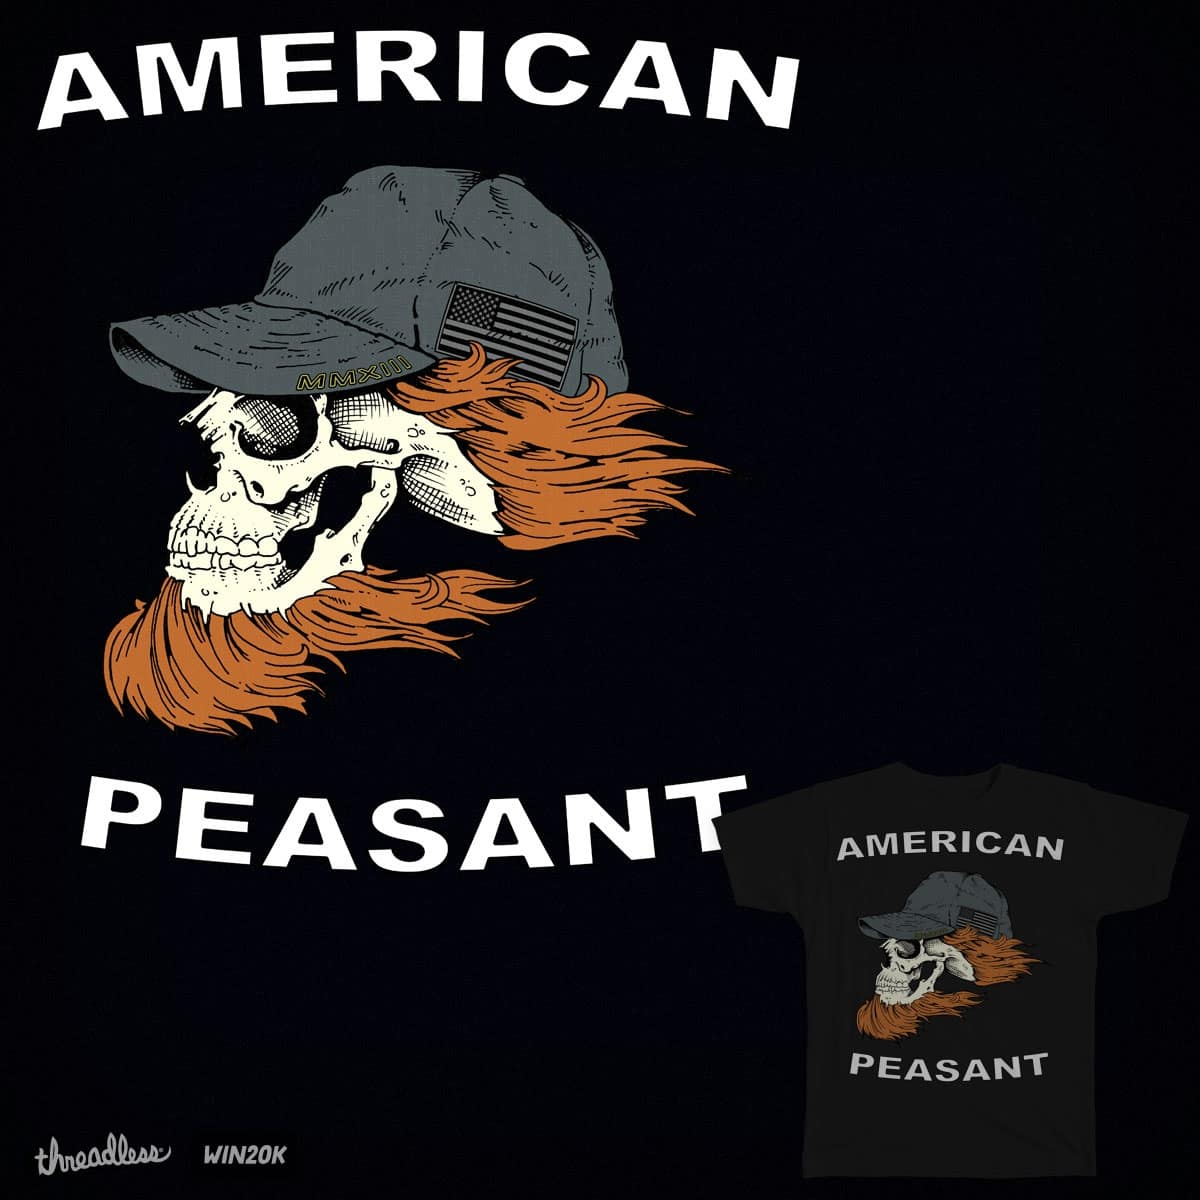 American Peasant  by hassified on Threadless